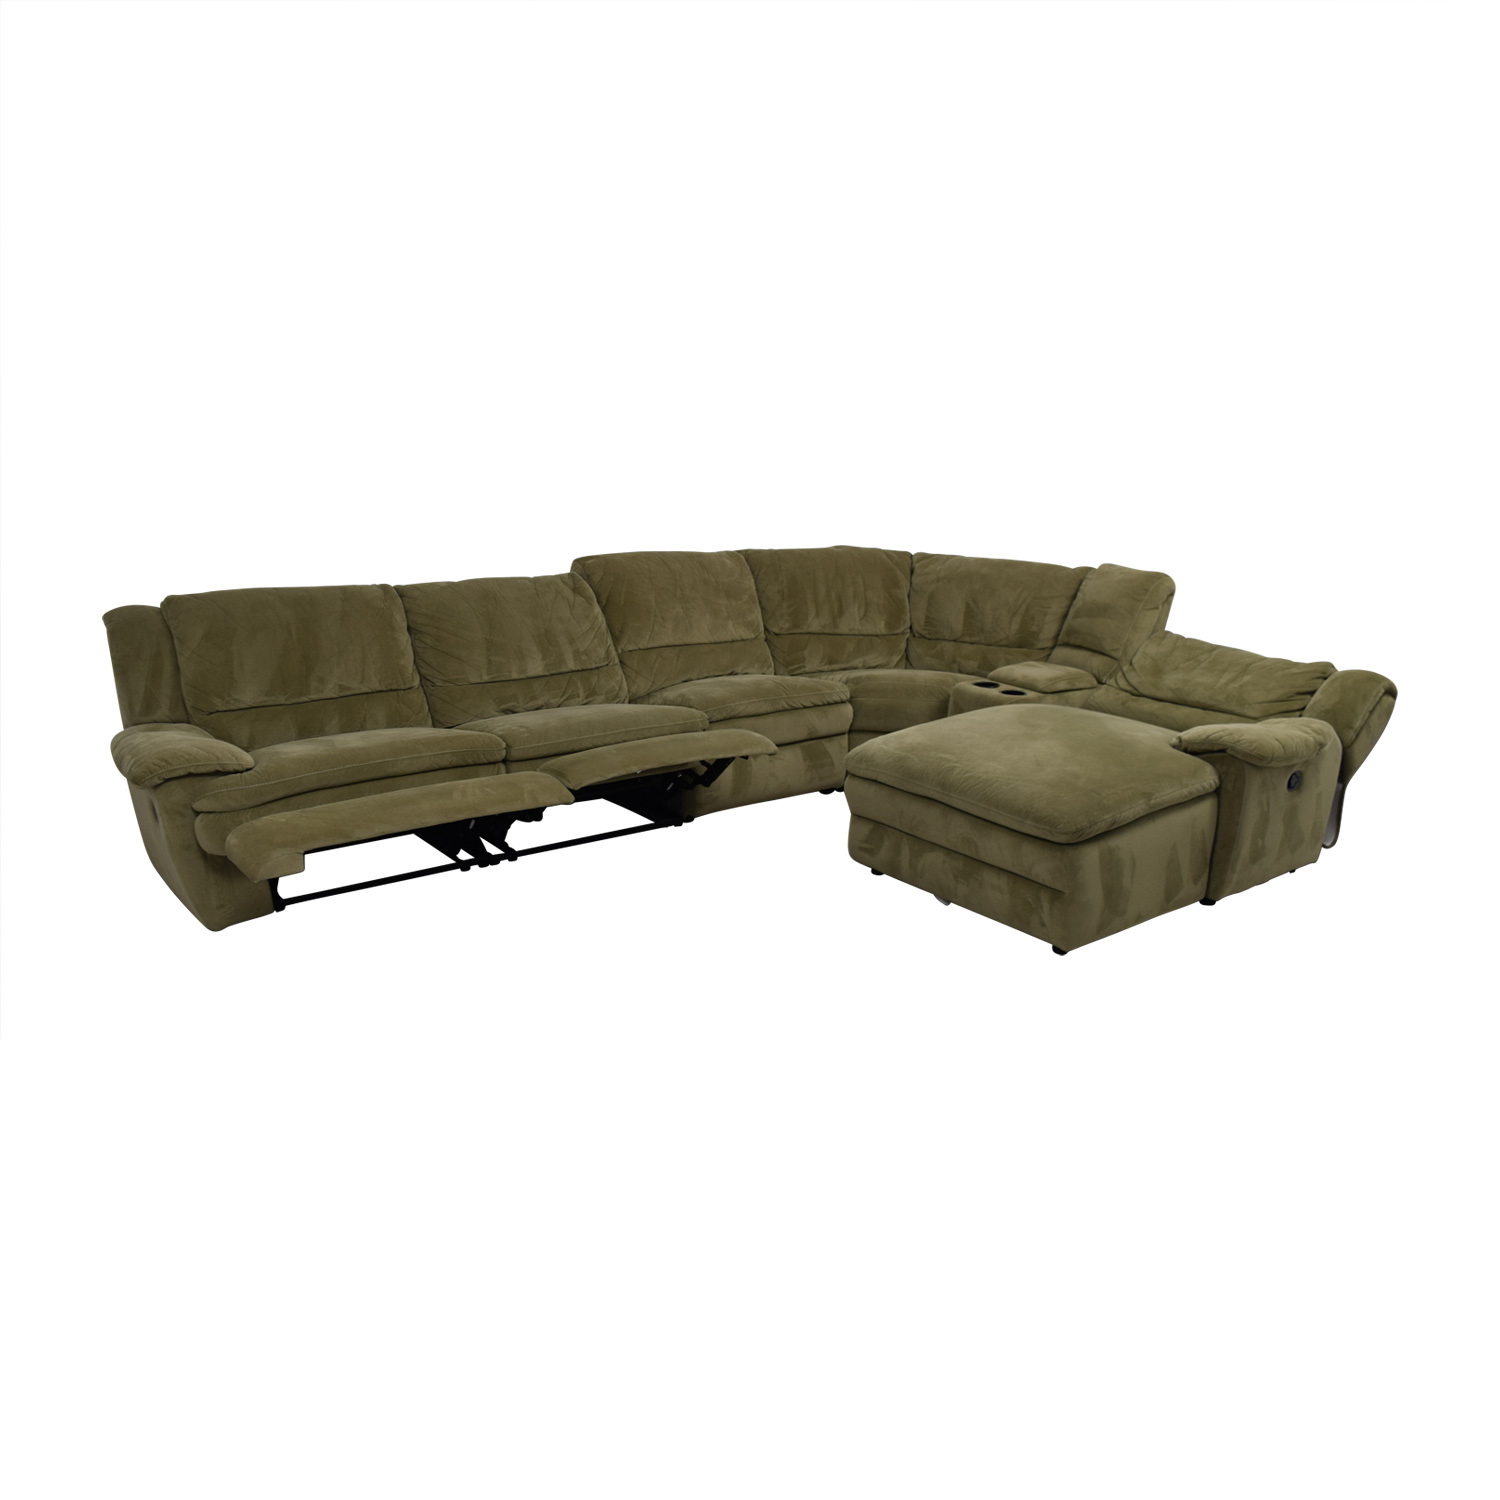 ... Bobu0027s Furniture Grey L Shaped Reclining Sectional / Sectionals ...